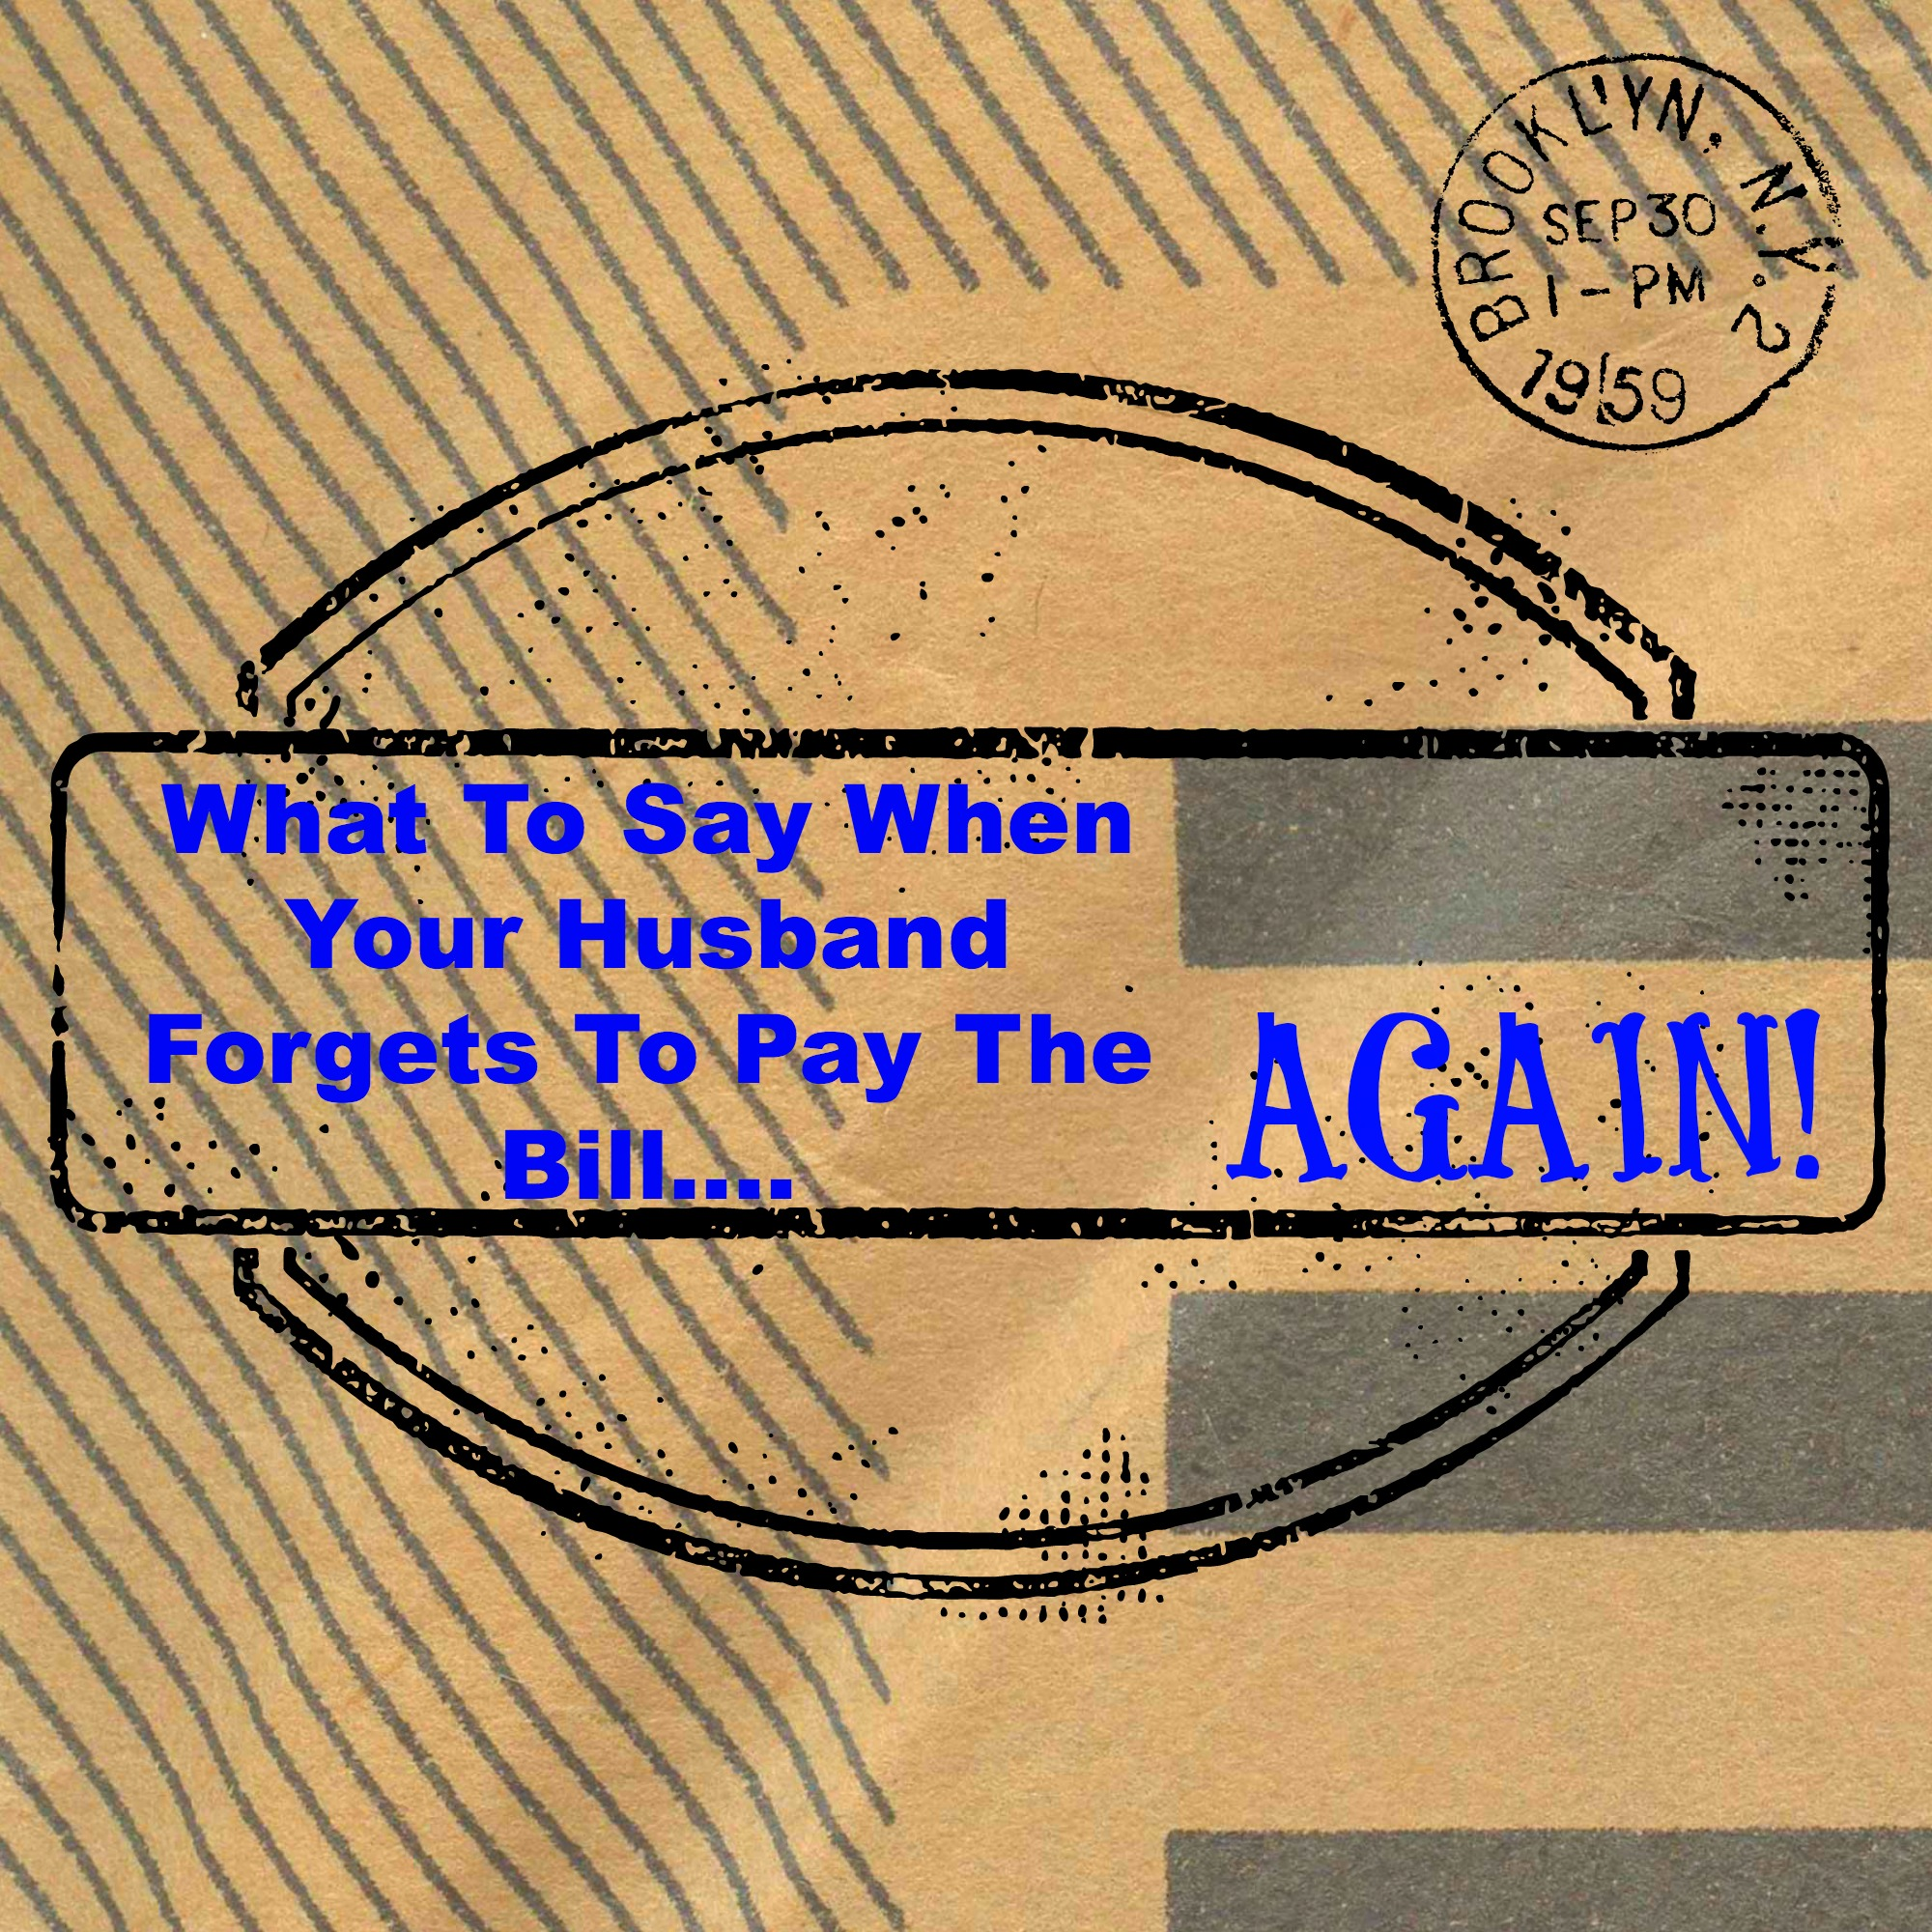 What To Say When Your Husband Forgets To Pay The Bill...Again!